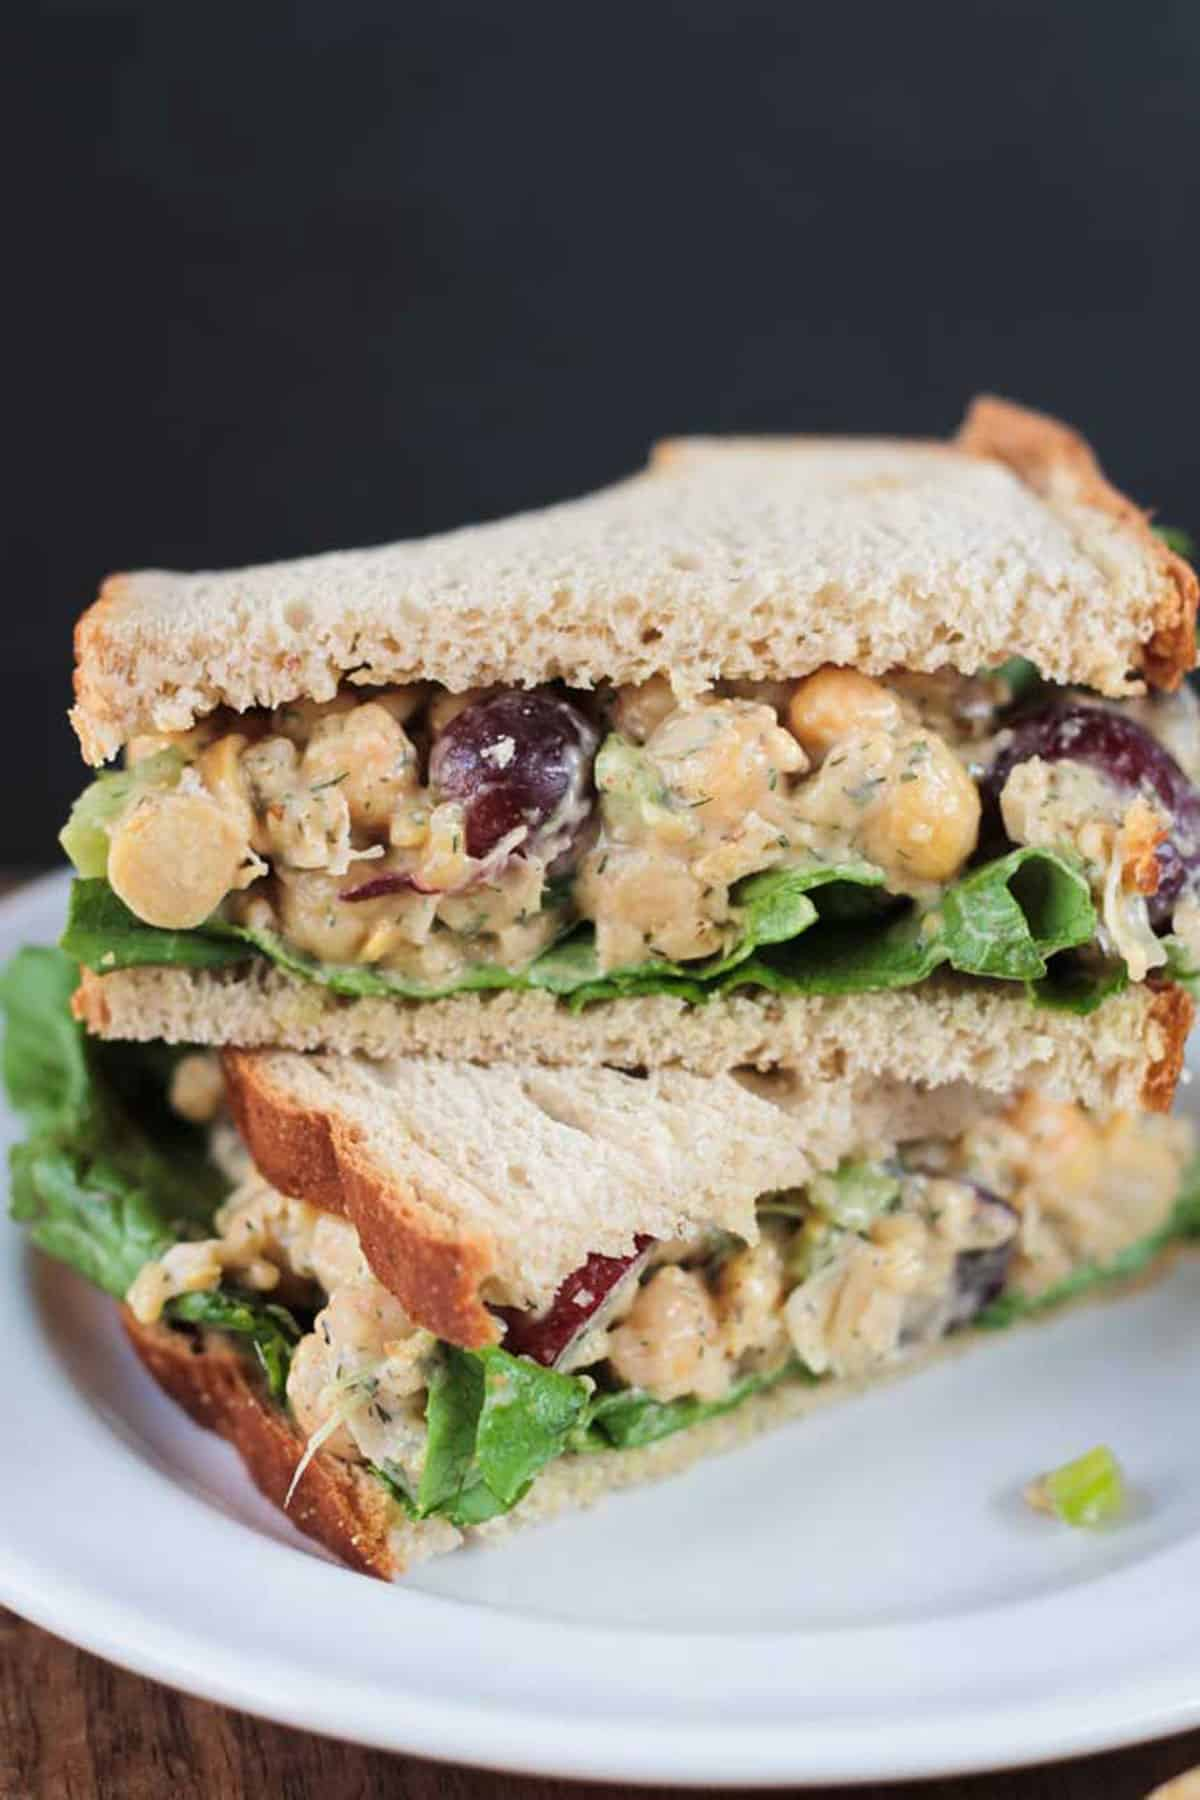 Two sandwich halves filled with vegan chickpea salad stacked on each other.